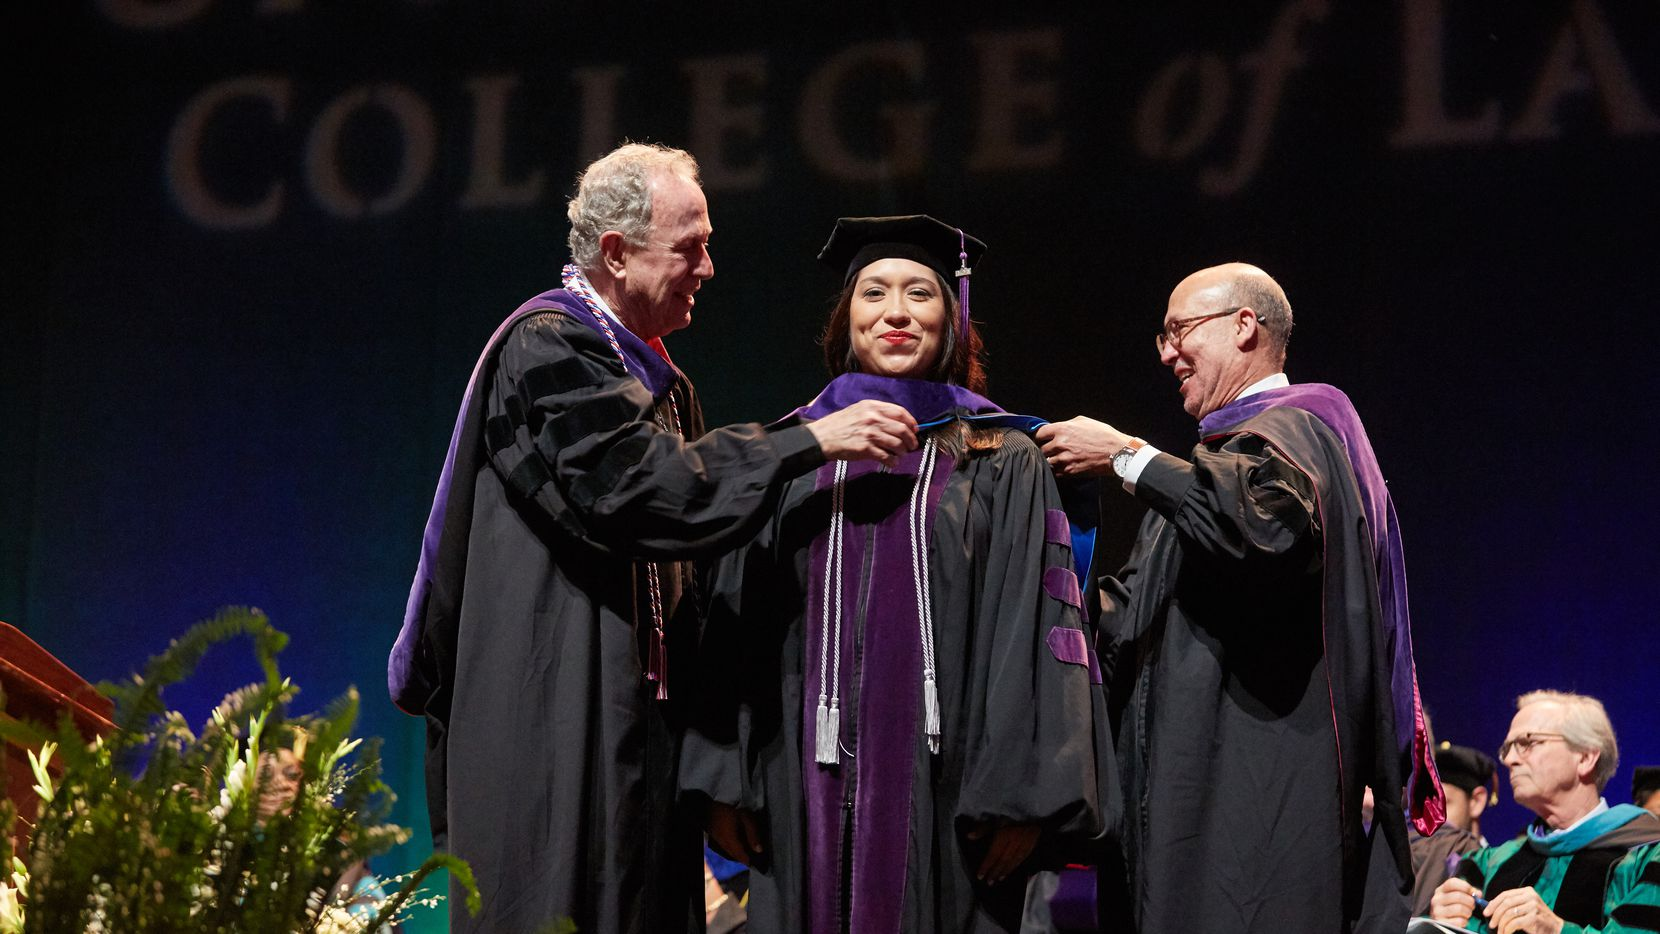 Dean Royal Furgeson of the University of North Texas Dallas College of Law, left, places an academic hood on a member of the 2017 graduating class at the Majestic Theatre in Dallas on May 20, 2017. Thirty-five members of the class, the new law school's first, were recently told they had passed bar exams taken in July.